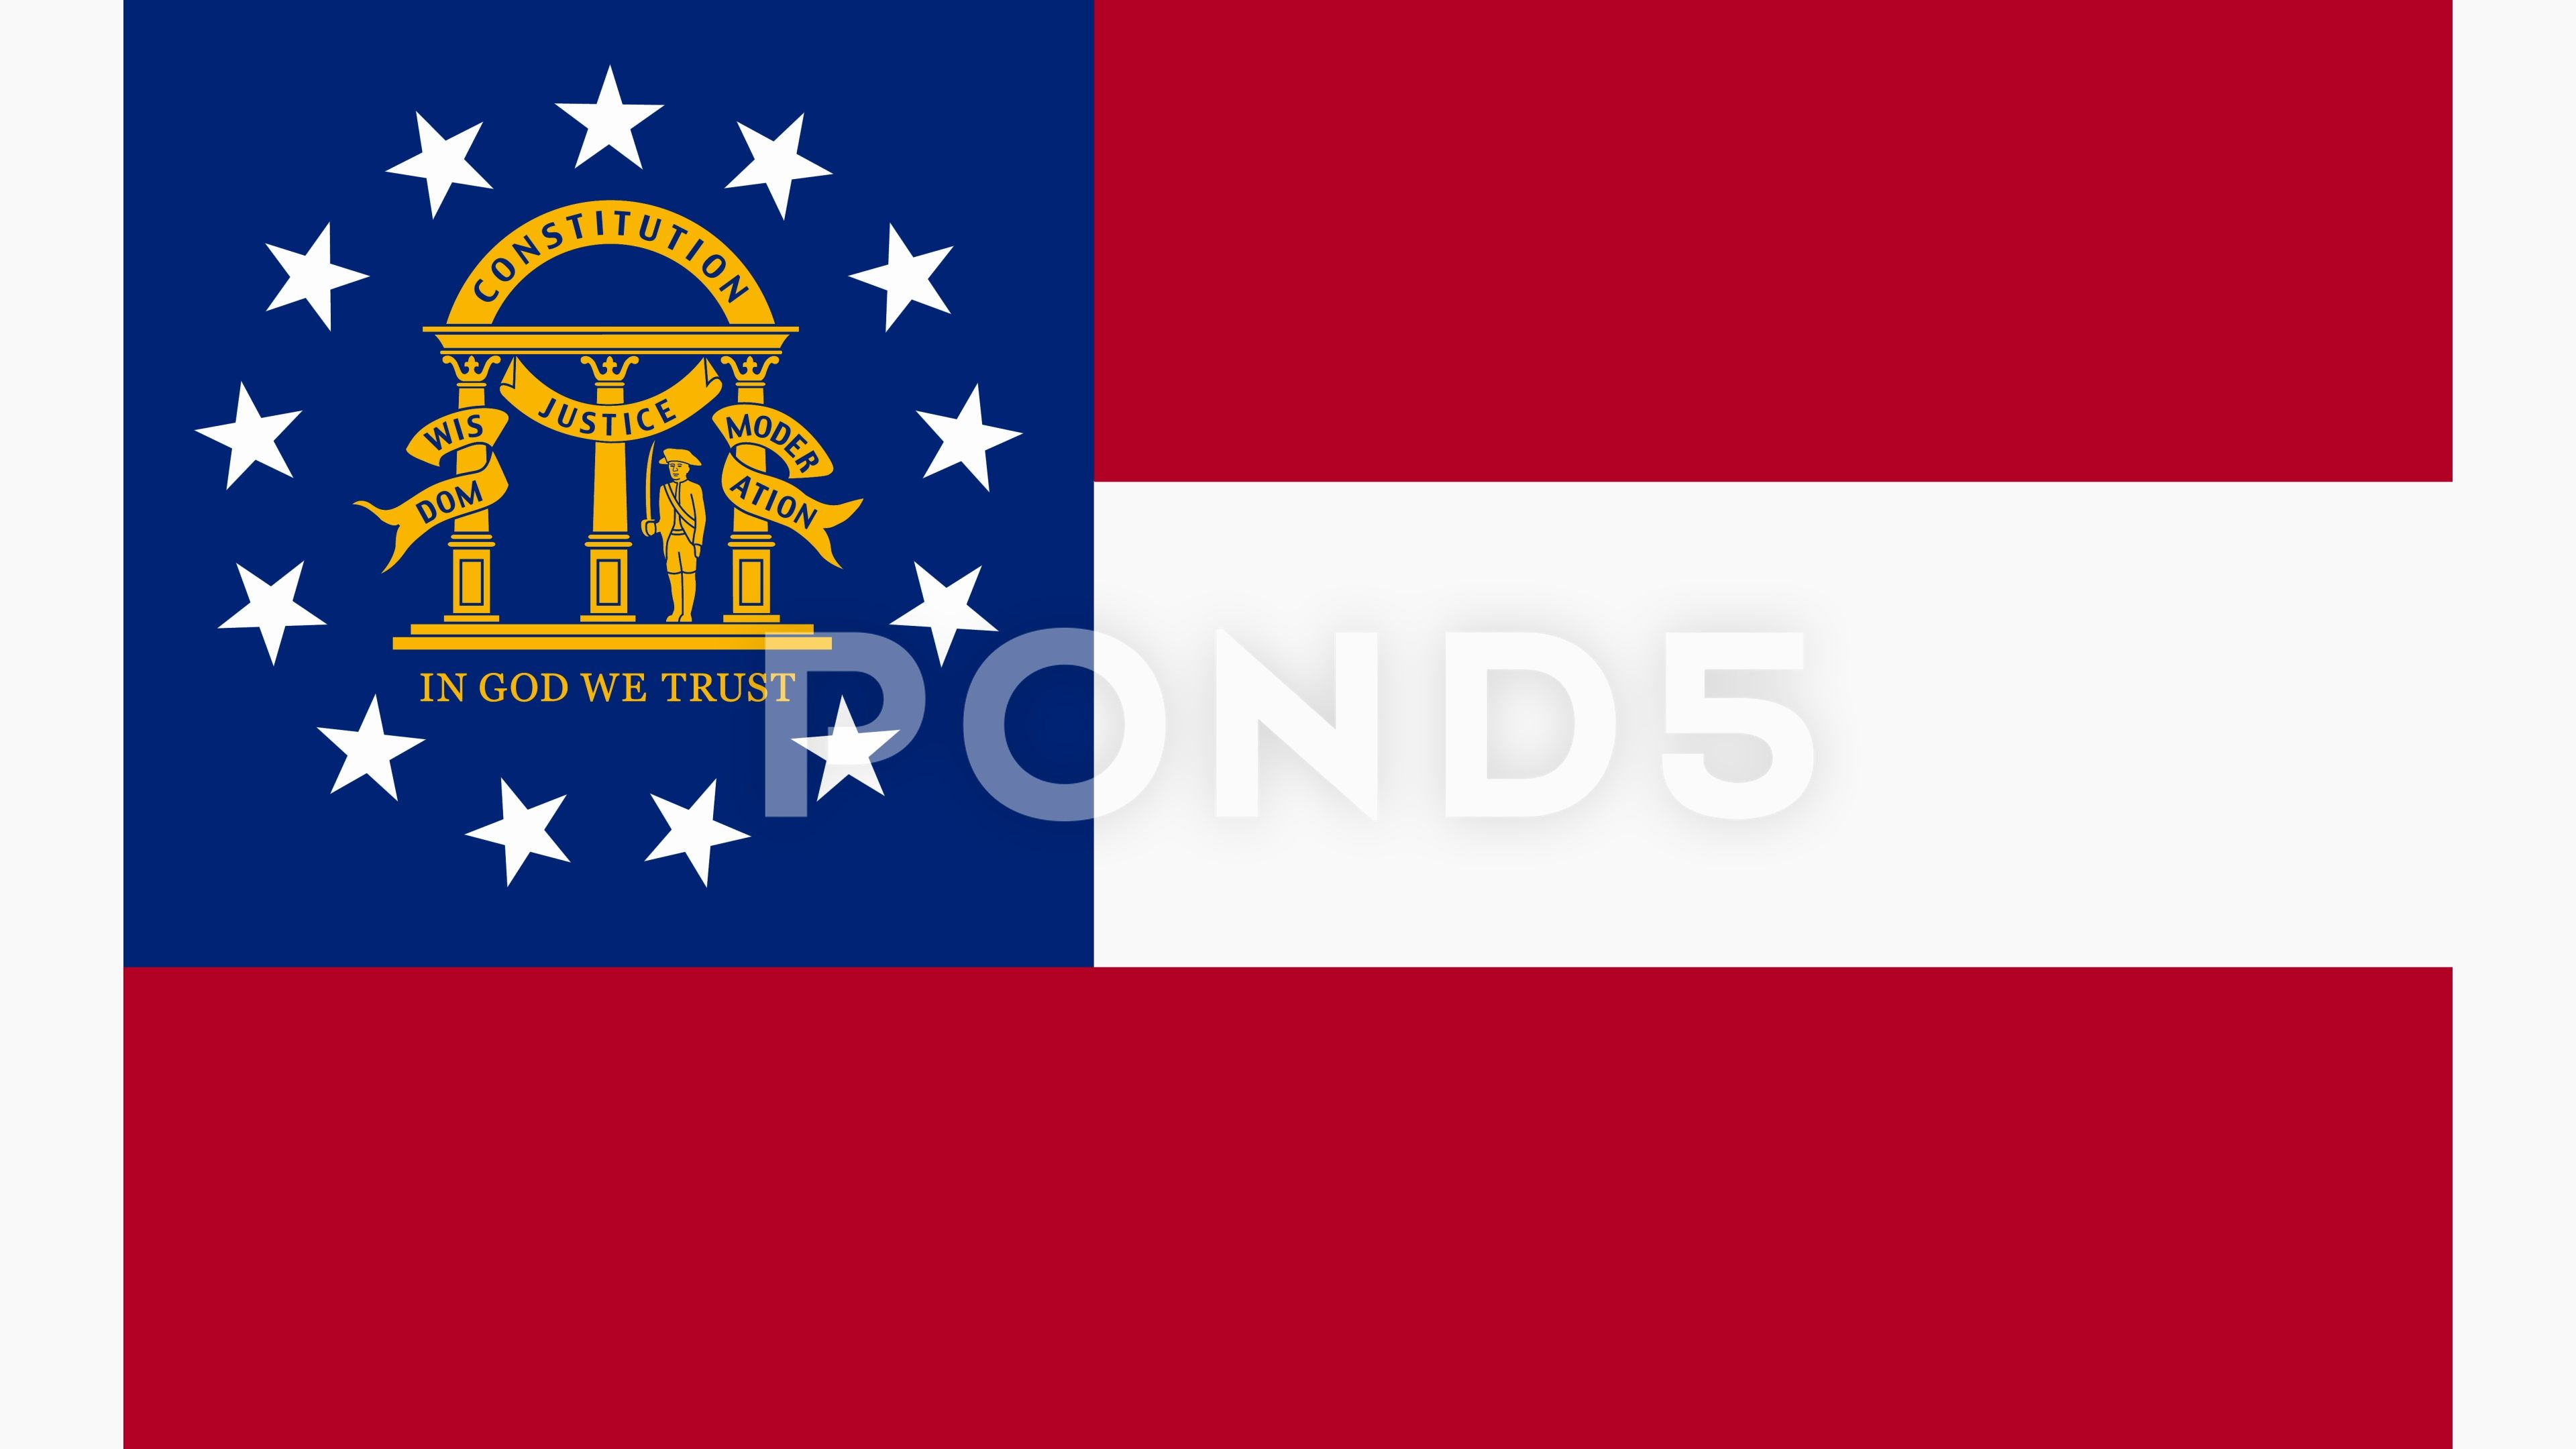 Georgia State Flag Fly In And Fly Out 3d Animation Ad Flag State Georgia Fly Georgia State Flag Animation State Flags